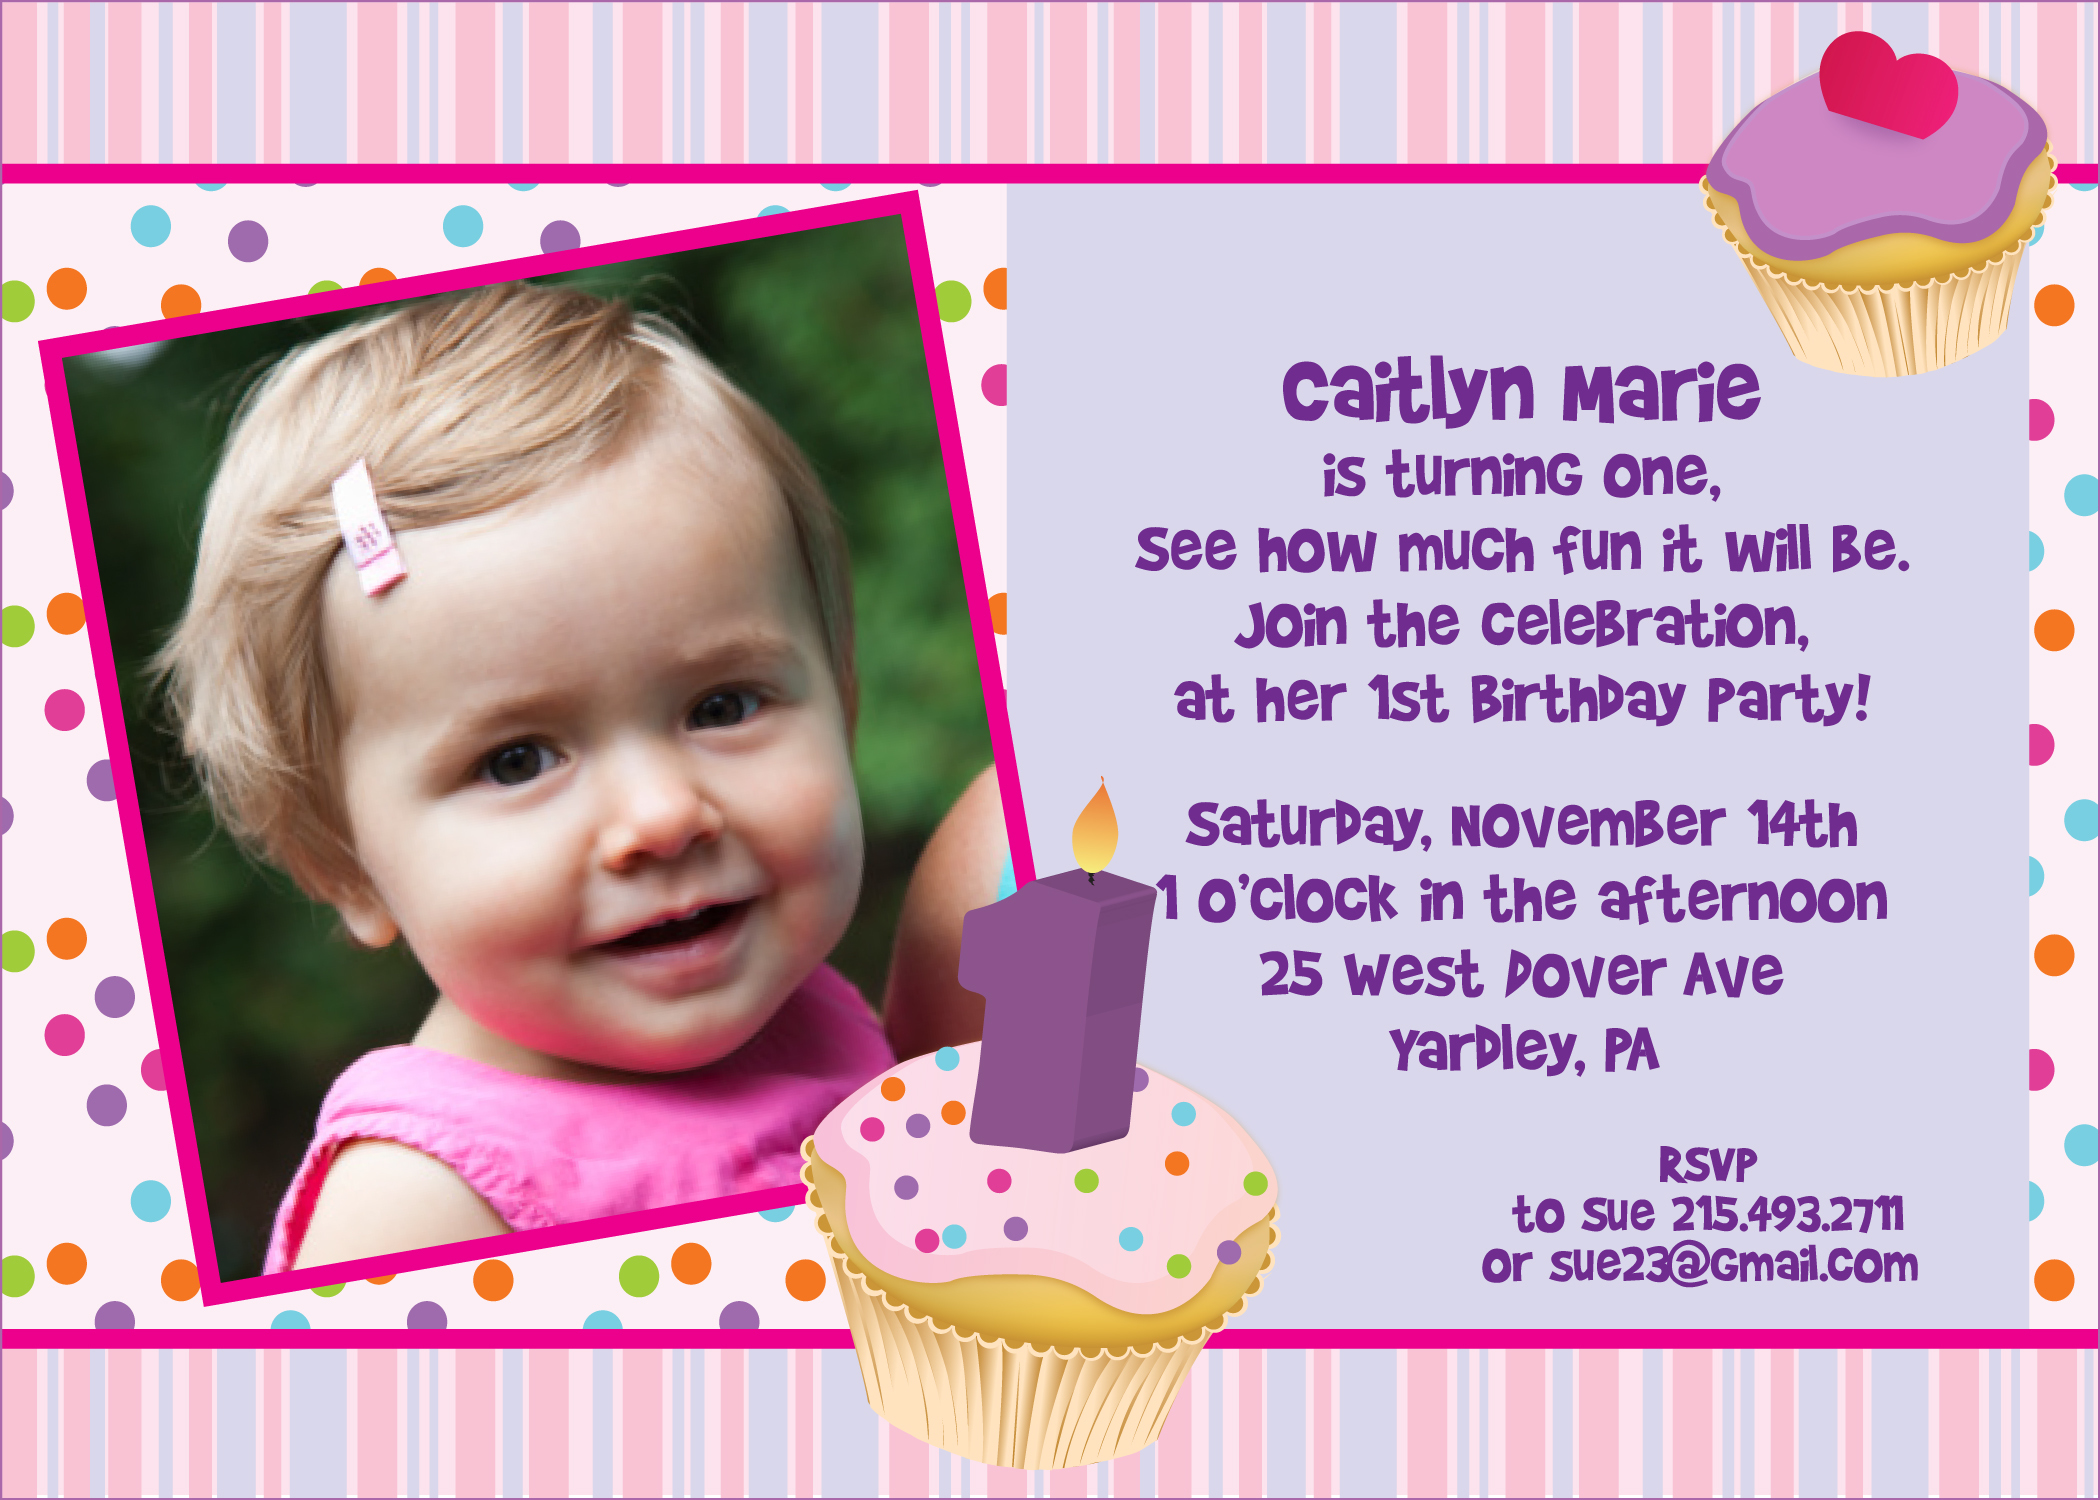 birthday invitation card sample design ; 10th-birthday-party-invitation-wording-samples-7th-birthday-invitation-message-for-a-fetching-birthday-invitation-design-with-fetching-layout-10